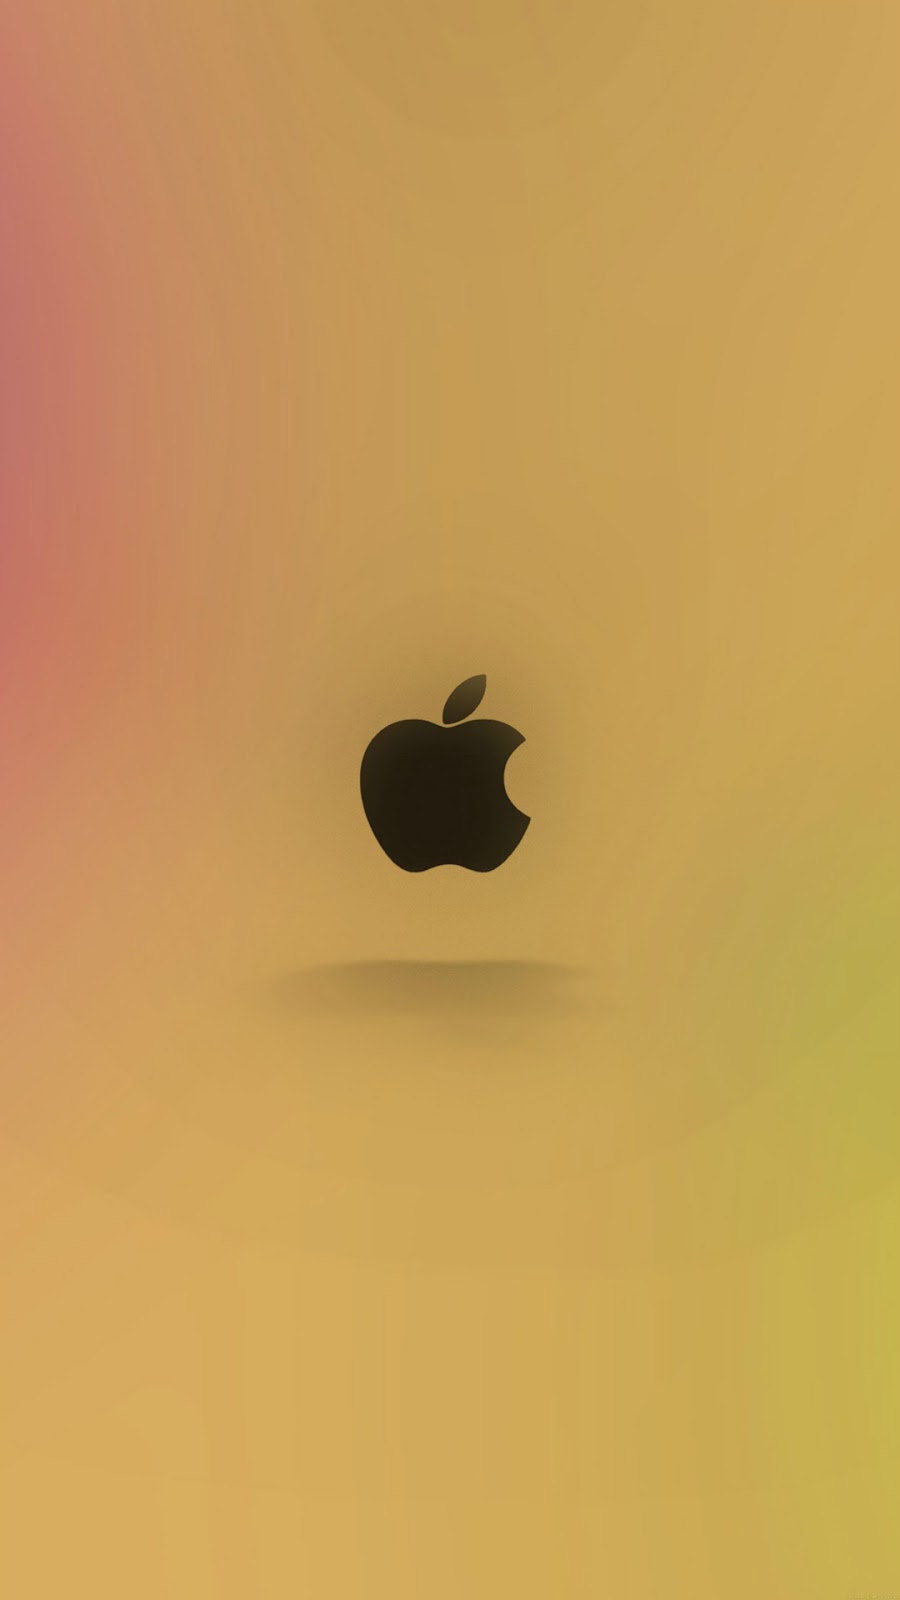 Apple Iphone 6 And Iphone 6s Wallpaper Free Download Iphone